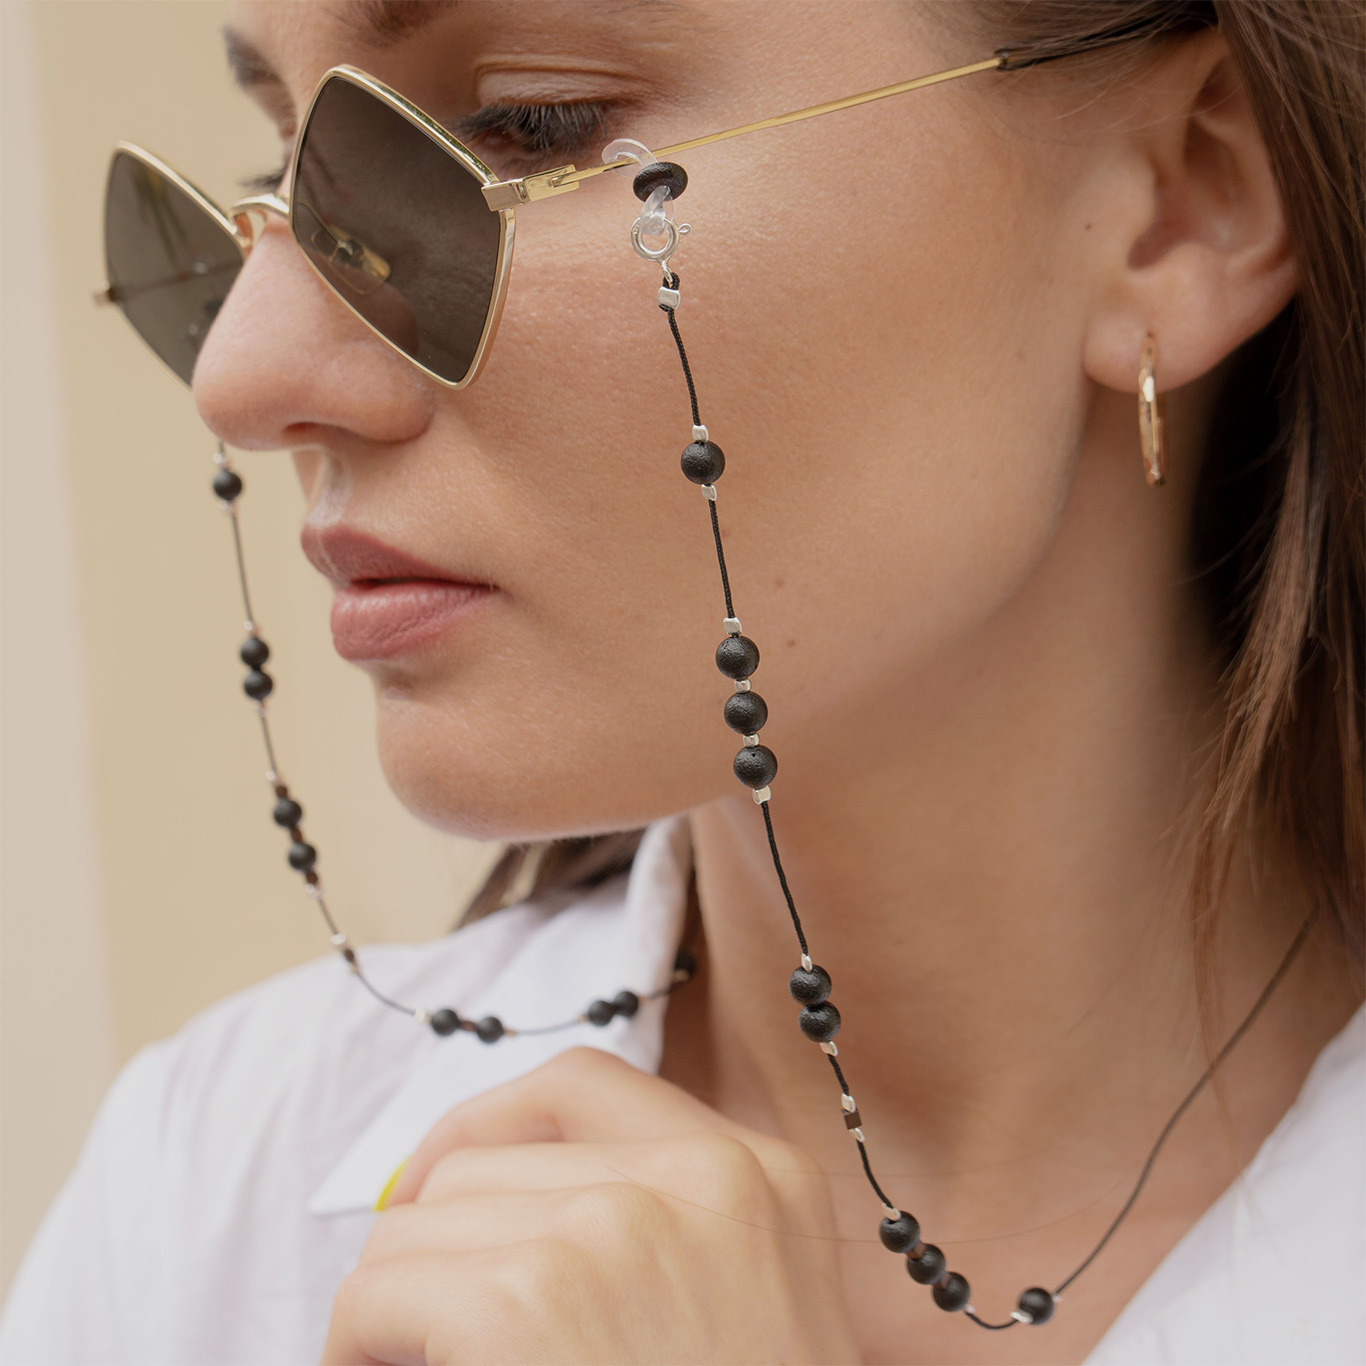 eyeglasse-necklace-3